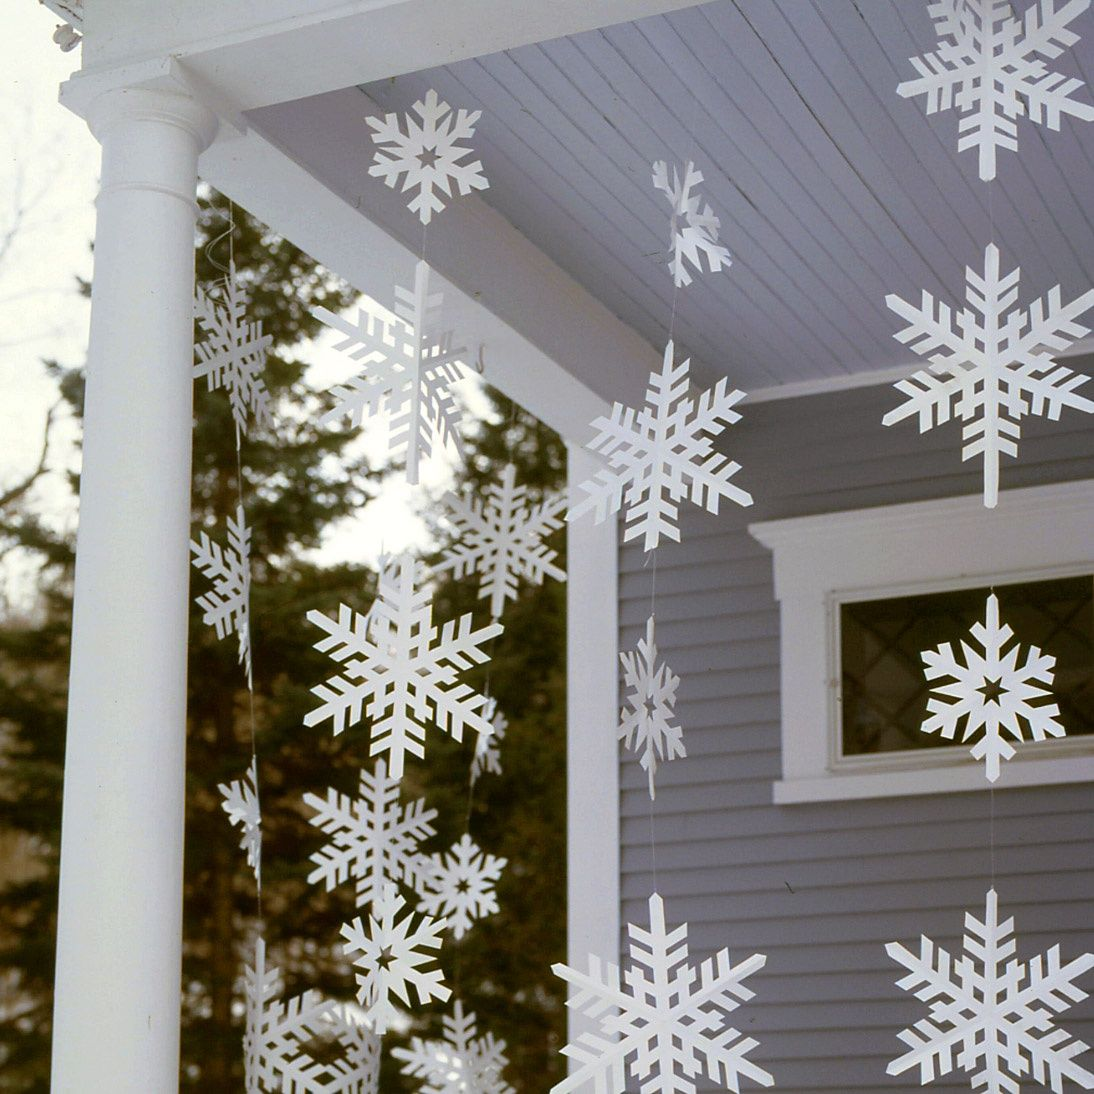 Frosty Banners | Step-by-Step | DIY Craft How To's and Instructions| Martha Stewart